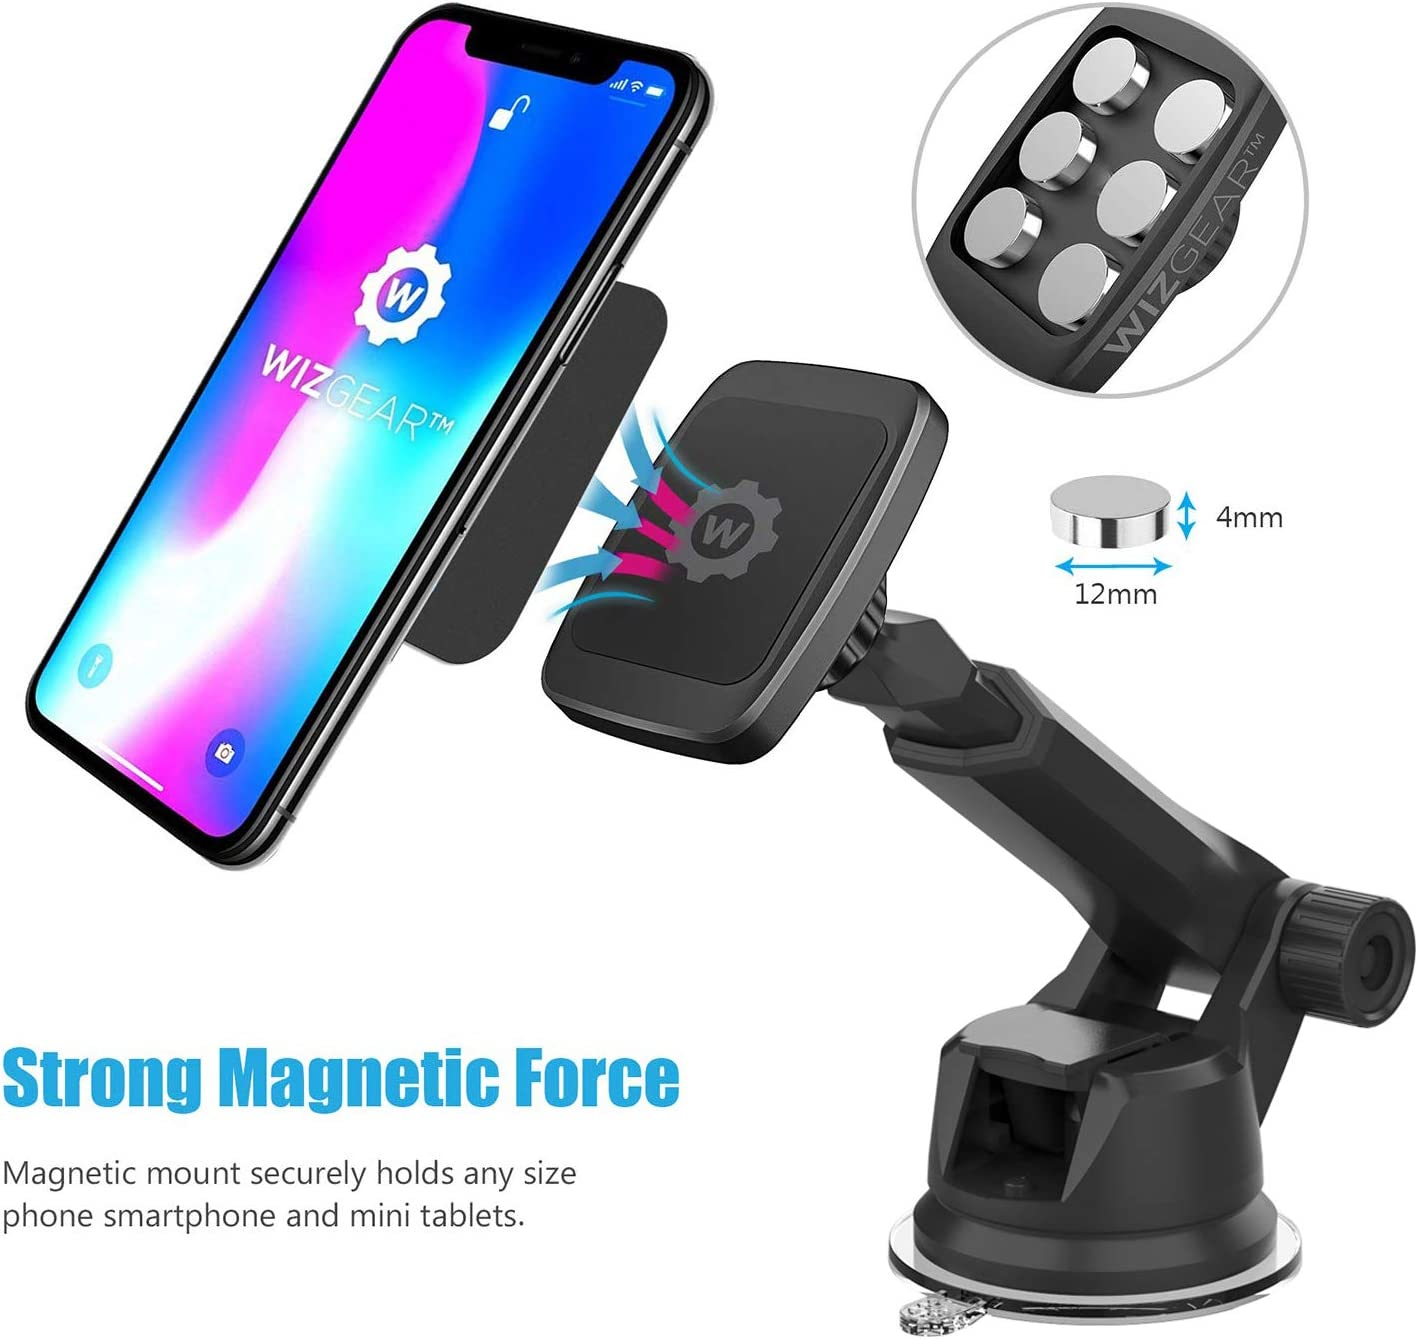 WizGear Universal Magnetic Car Mount Holder New Version Telescopic Arm Windshield Mount and Dashboard Mount Holder for Cell Phones and Tablets with Long Arm